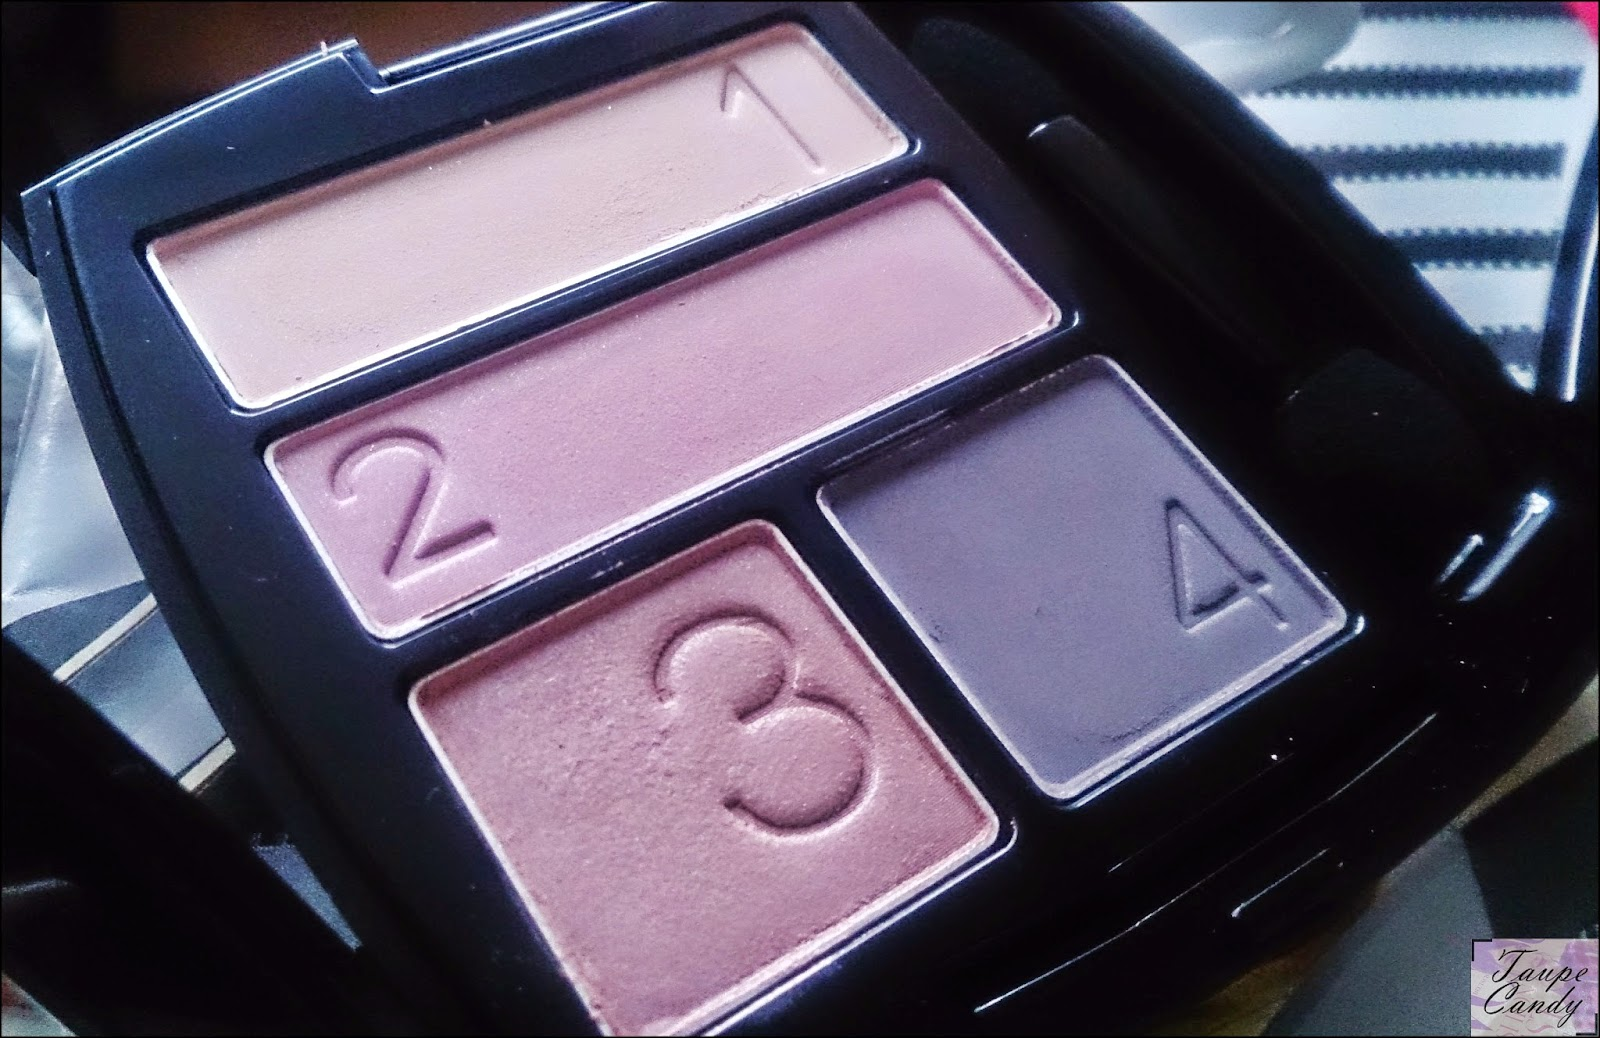 Avon Nearly Naked